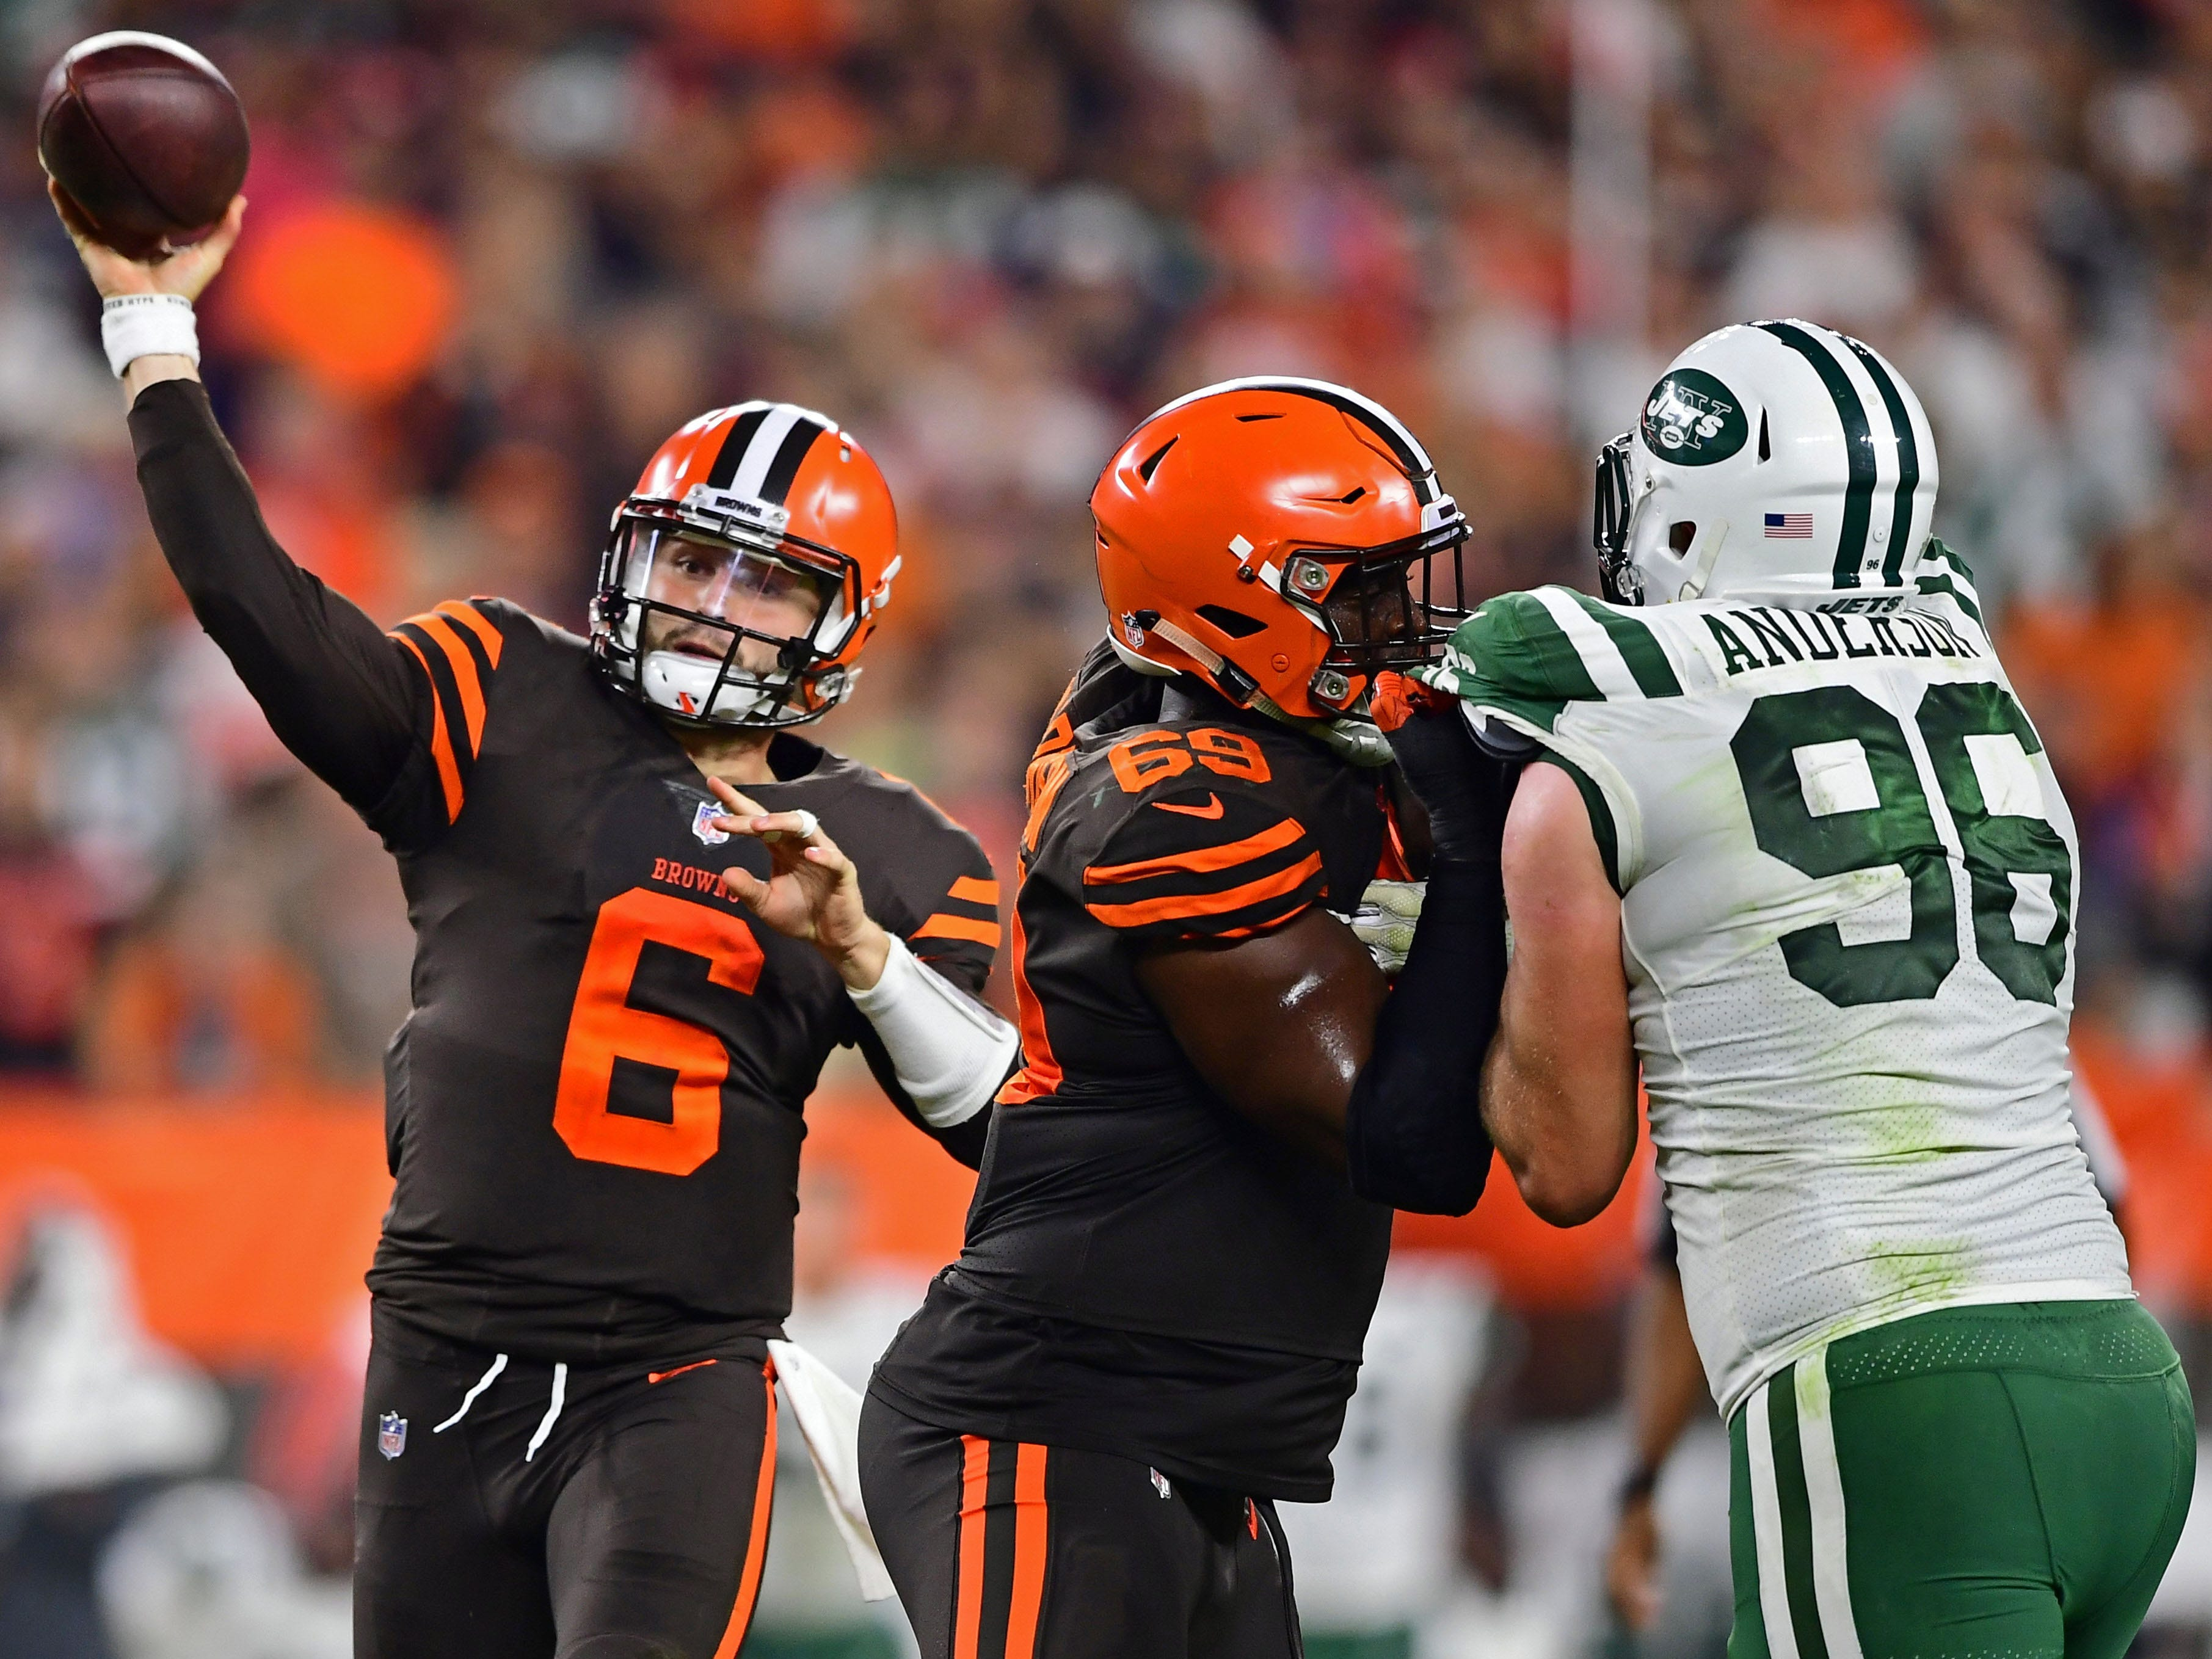 13. Browns (22): On pace for 59 takeaways, plus-48 TO differential, 14-0 record in games Baker Mayfield plays ... and, hence, first playoffs since '02.